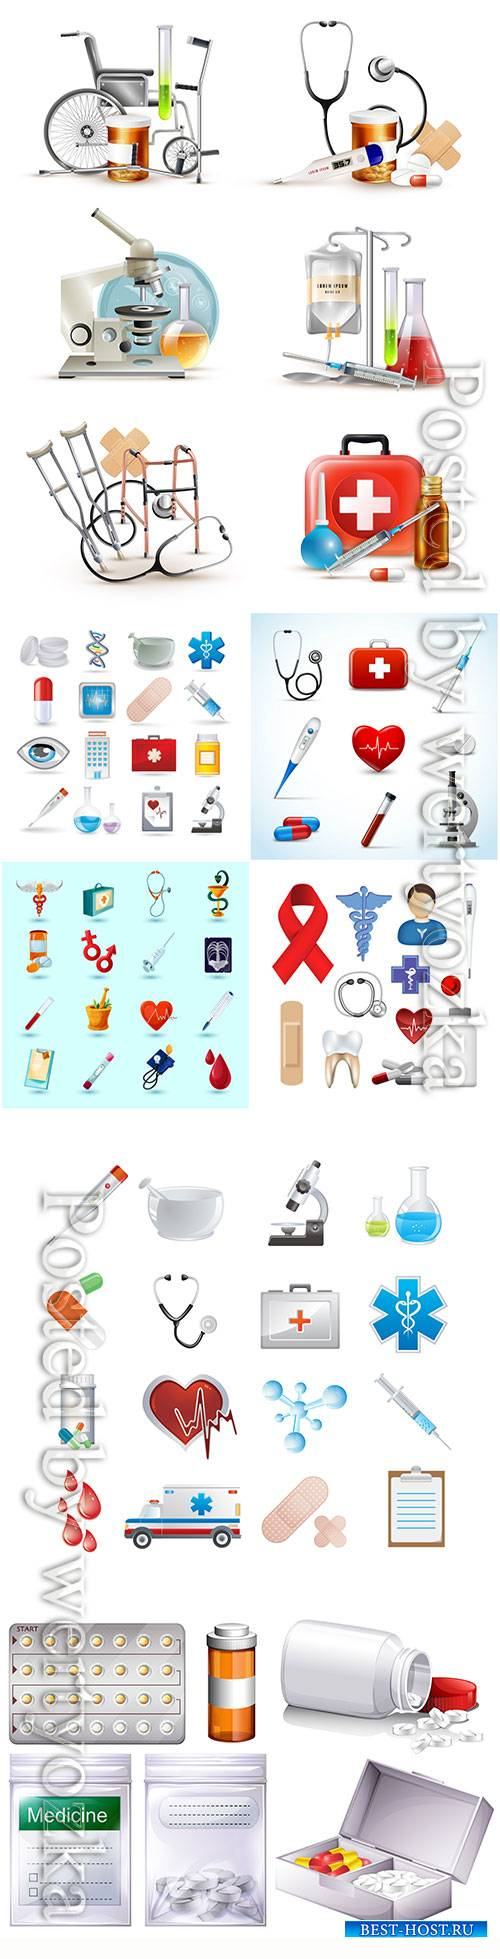 Medical supply elements vector set